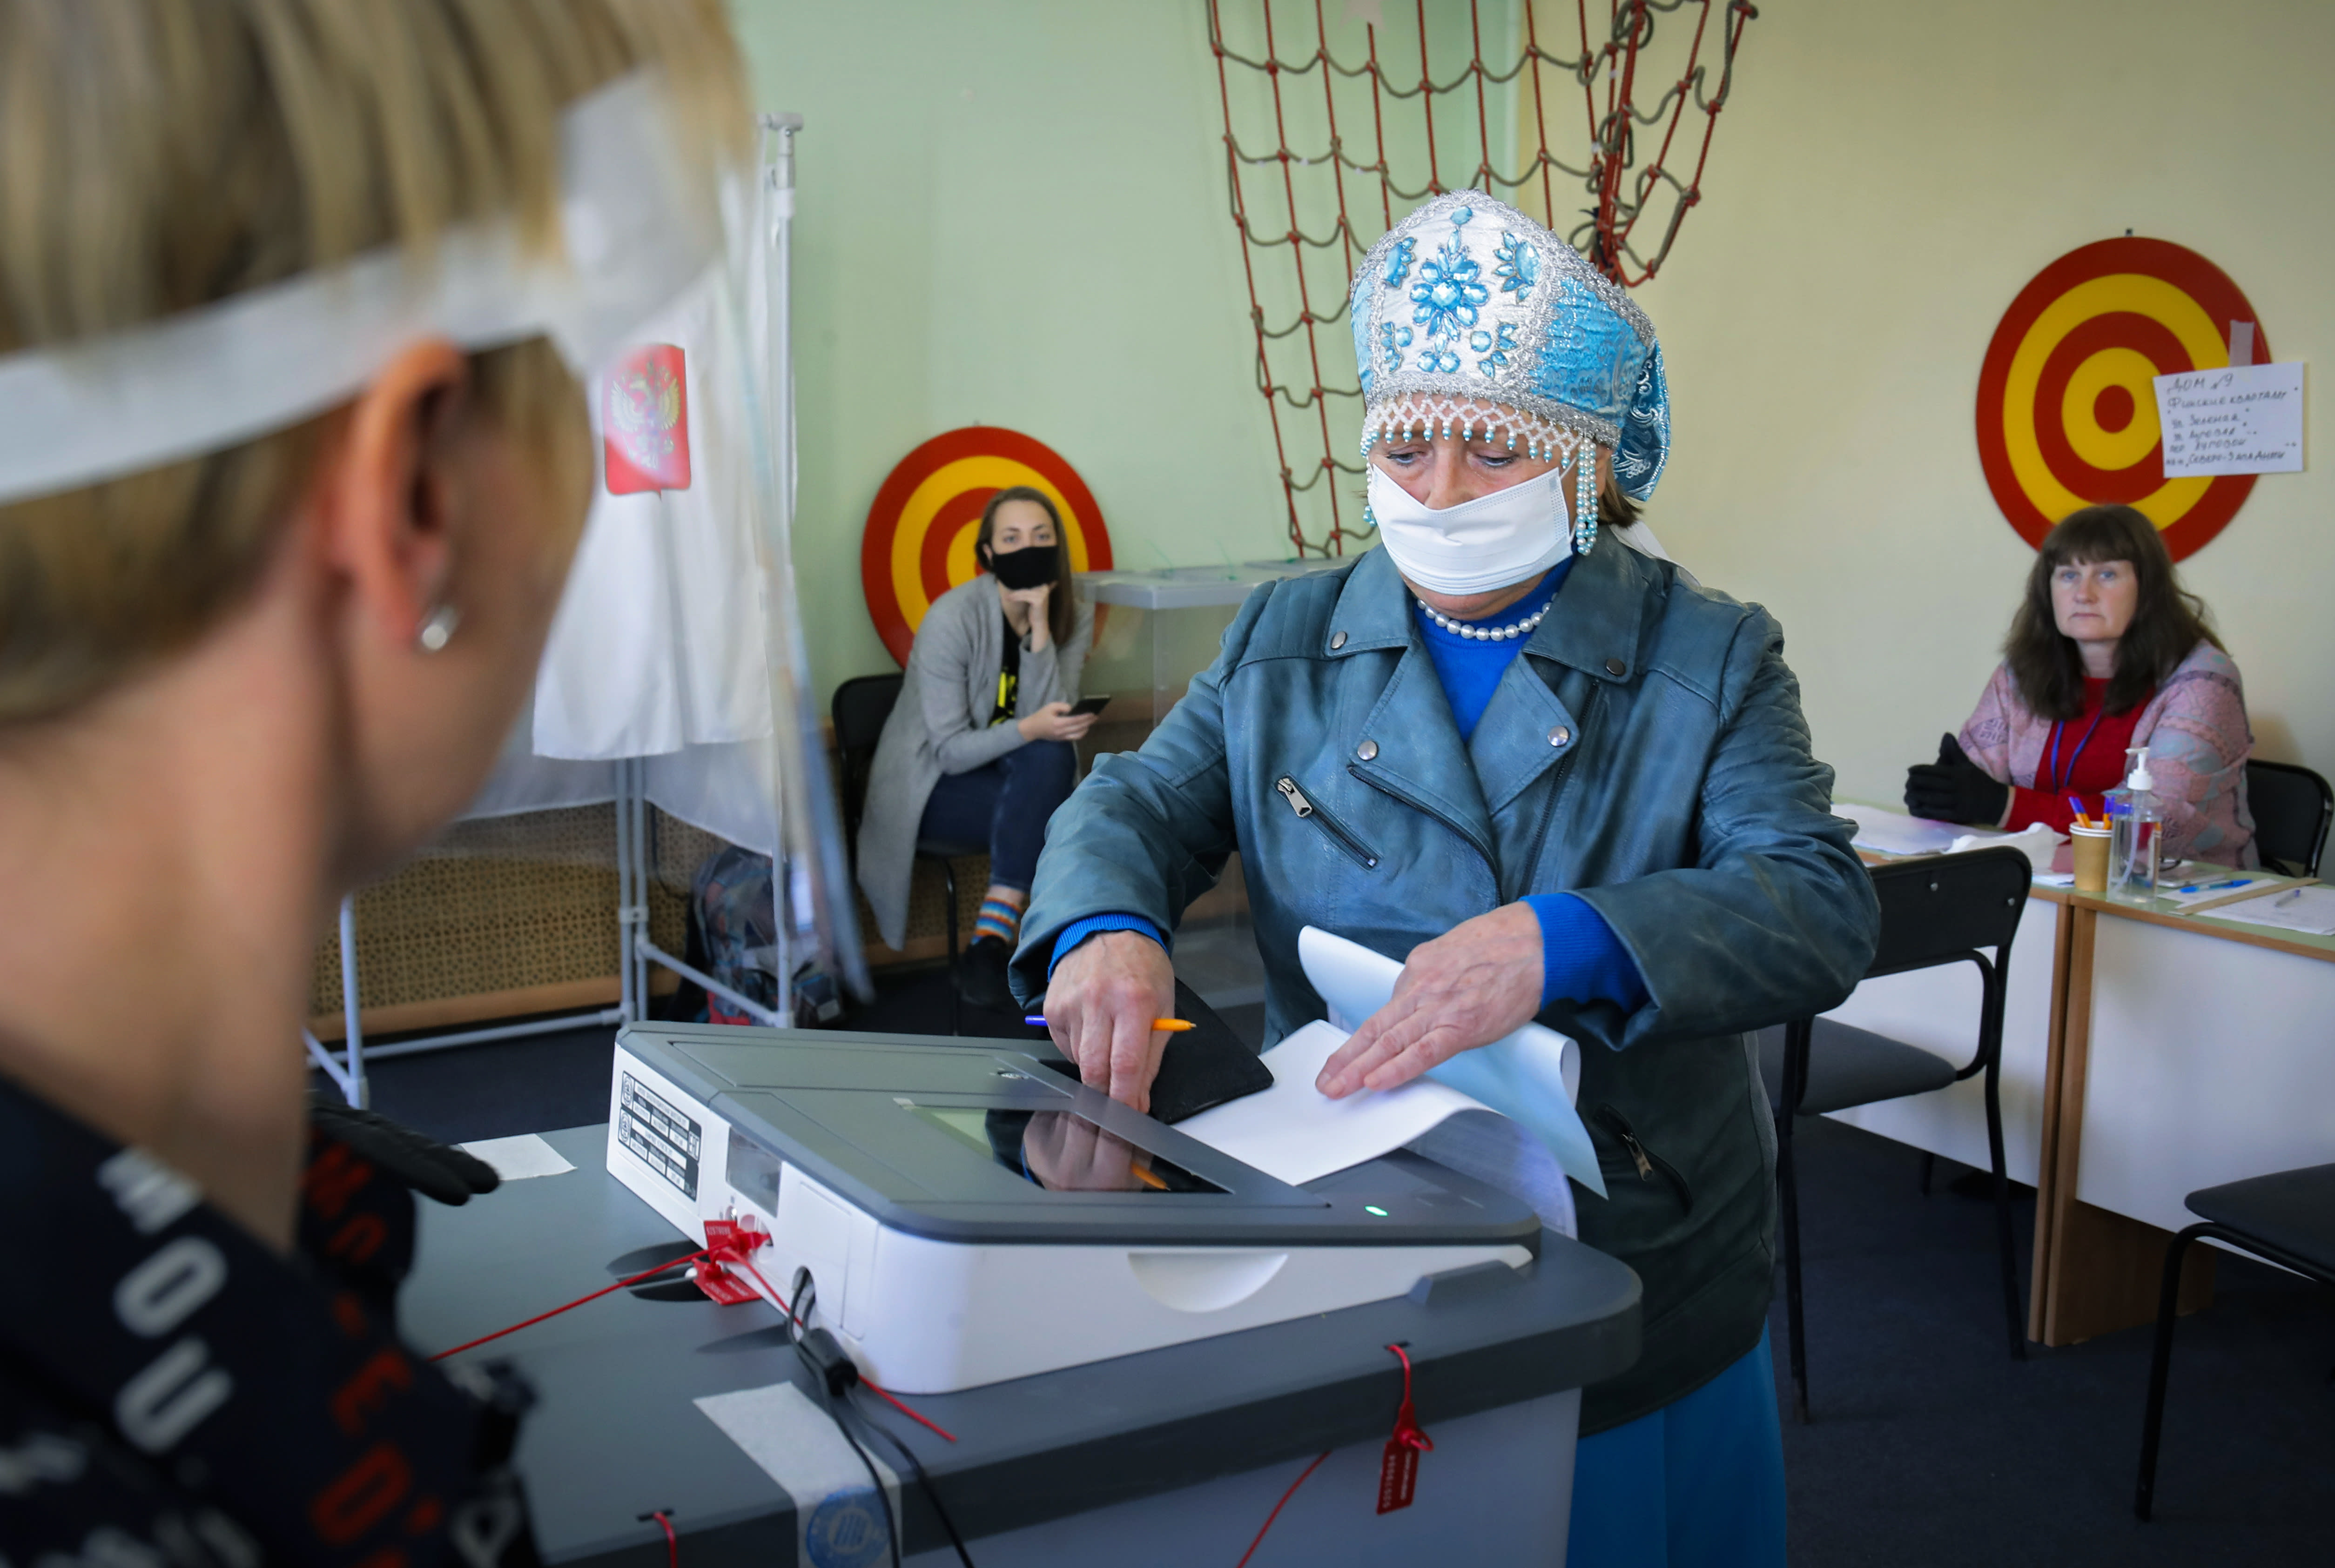 A woman wearing a face mask to protect against coronavirus infection casts her ballot at a poling station during Leningrad region's governor and municipal elections in Luppolovo village, outside St.Petersburg, Russia, Sunday, Sept. 13, 2020. Leningrad region is the territory surrounding St. Petersburg. The elections are held to choose governors and legislators in about half of Russia's regions. (AP Photo/Dmitri Lovetsky)